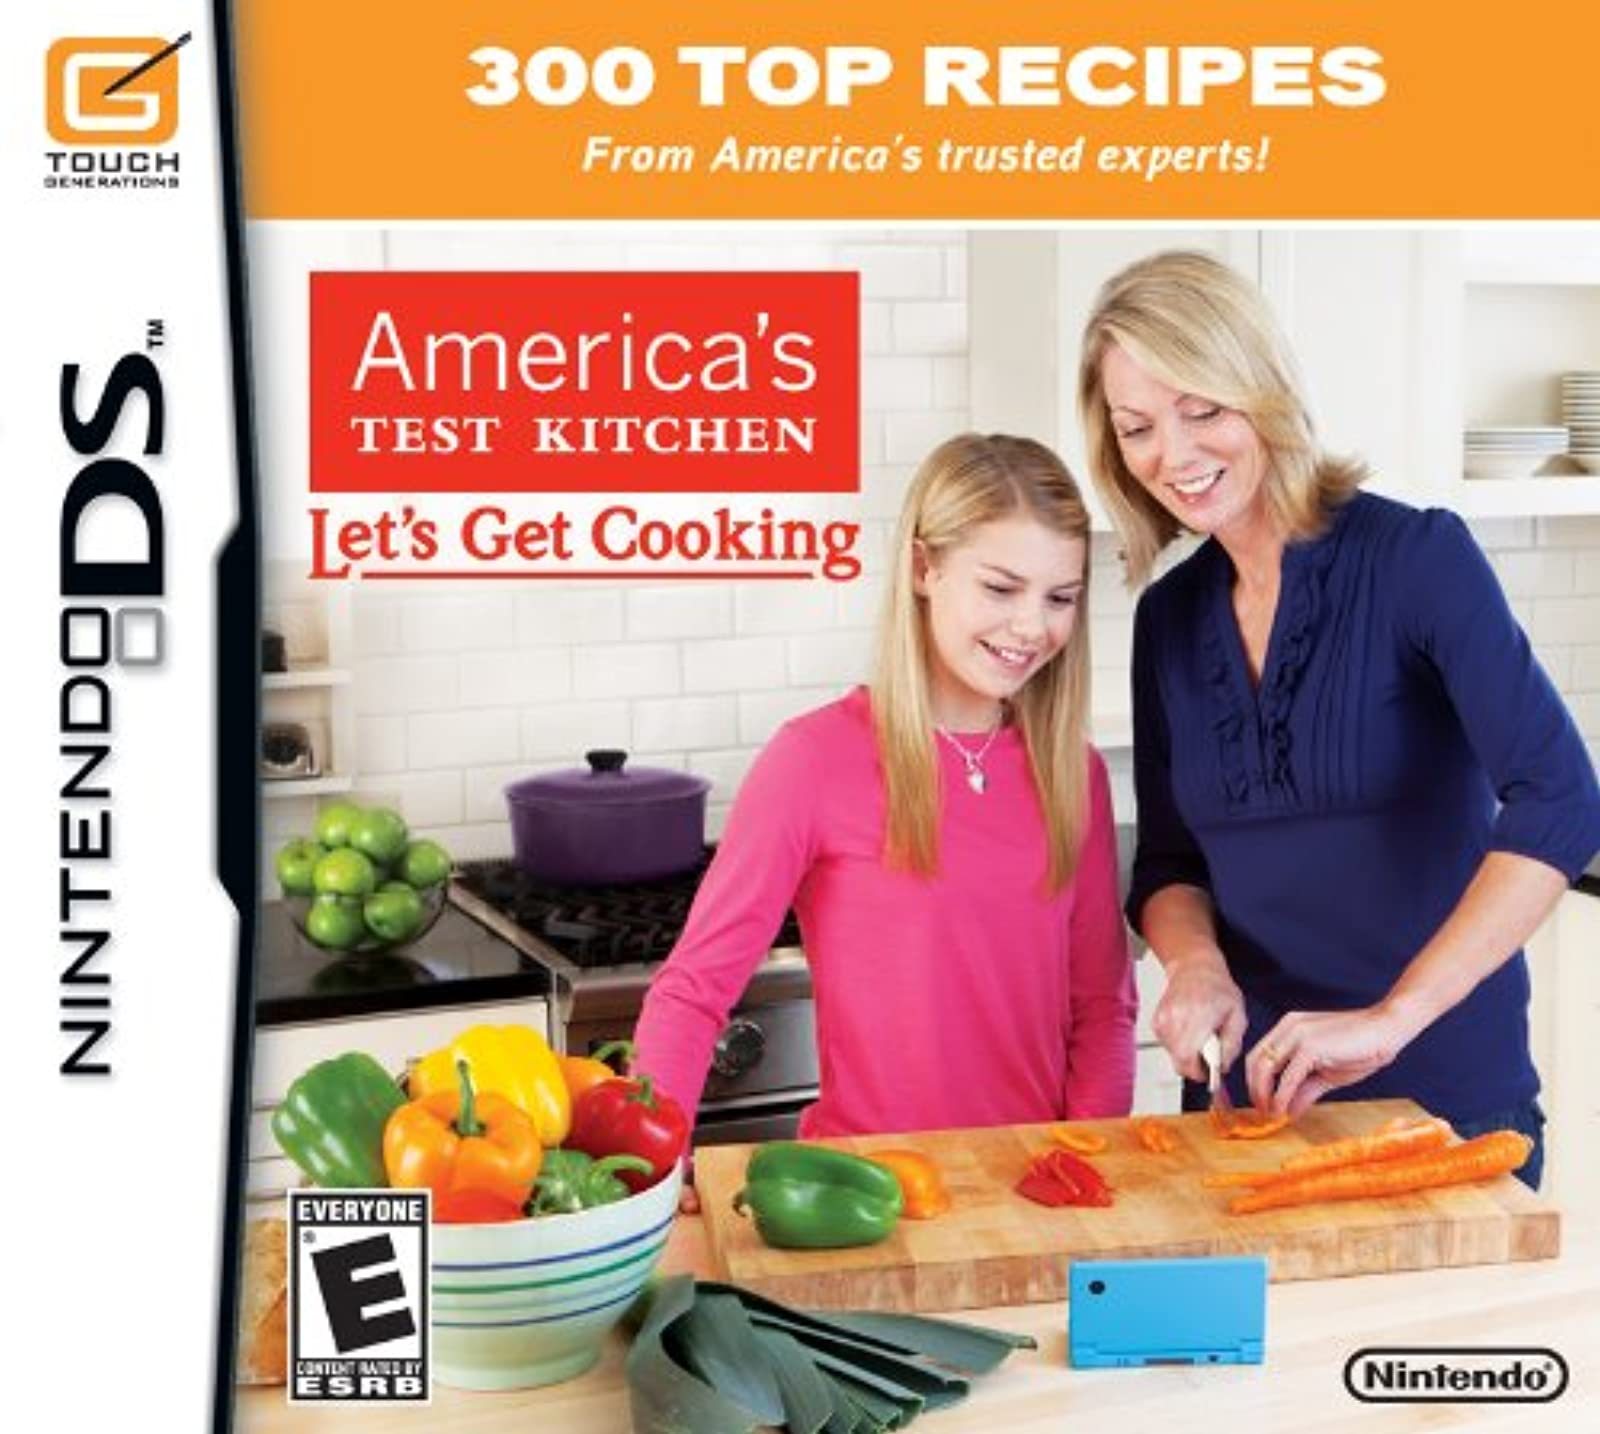 America's Test Kitchen: Let's Get Cooking For Nintendo DS DSi 3DS 2DS